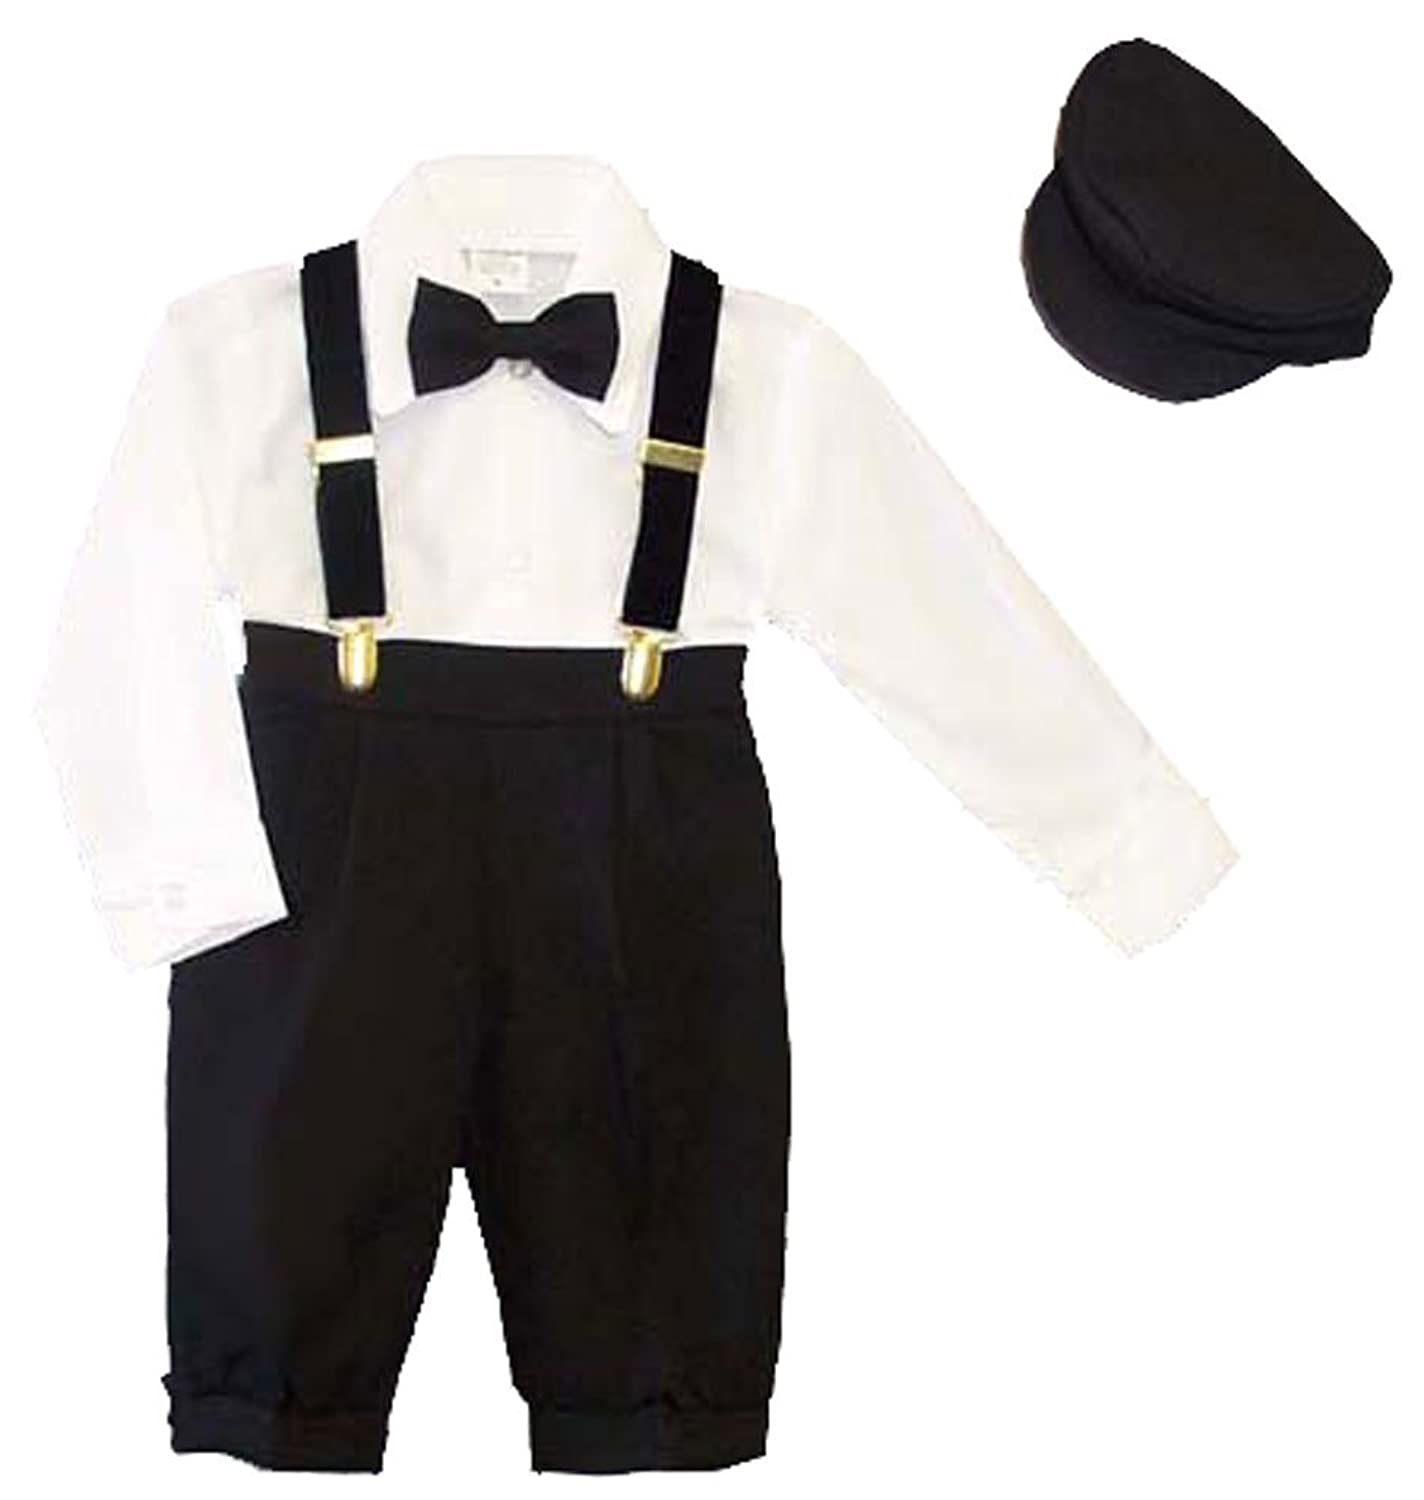 Amazon Infants & Toddlers 5 pc Knickers Outfit Tuxedo Style